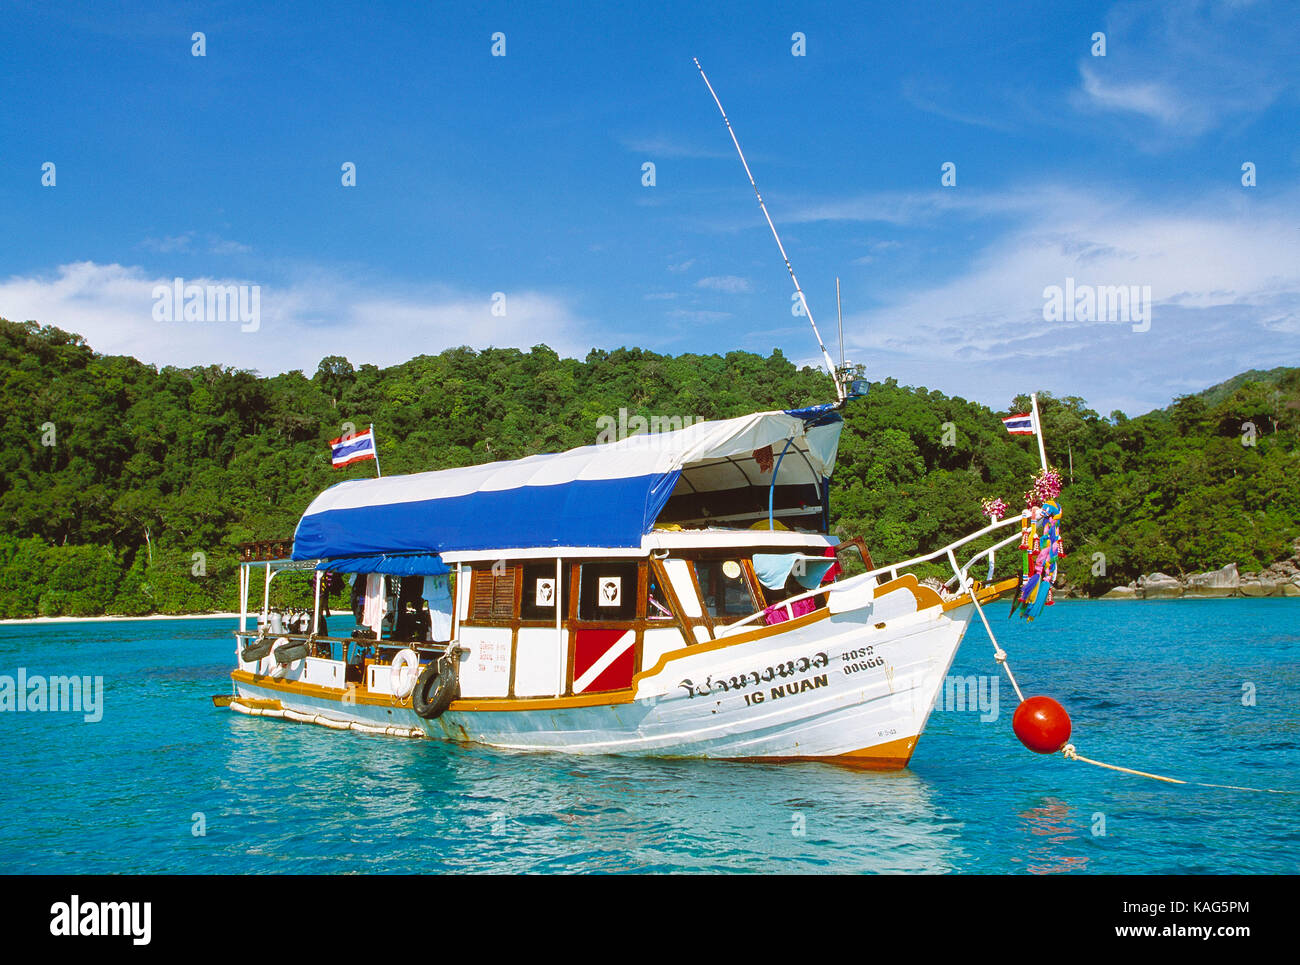 Thailand. Similan Islands. Water sports. Local dive boat moored off the beach. - Stock Image